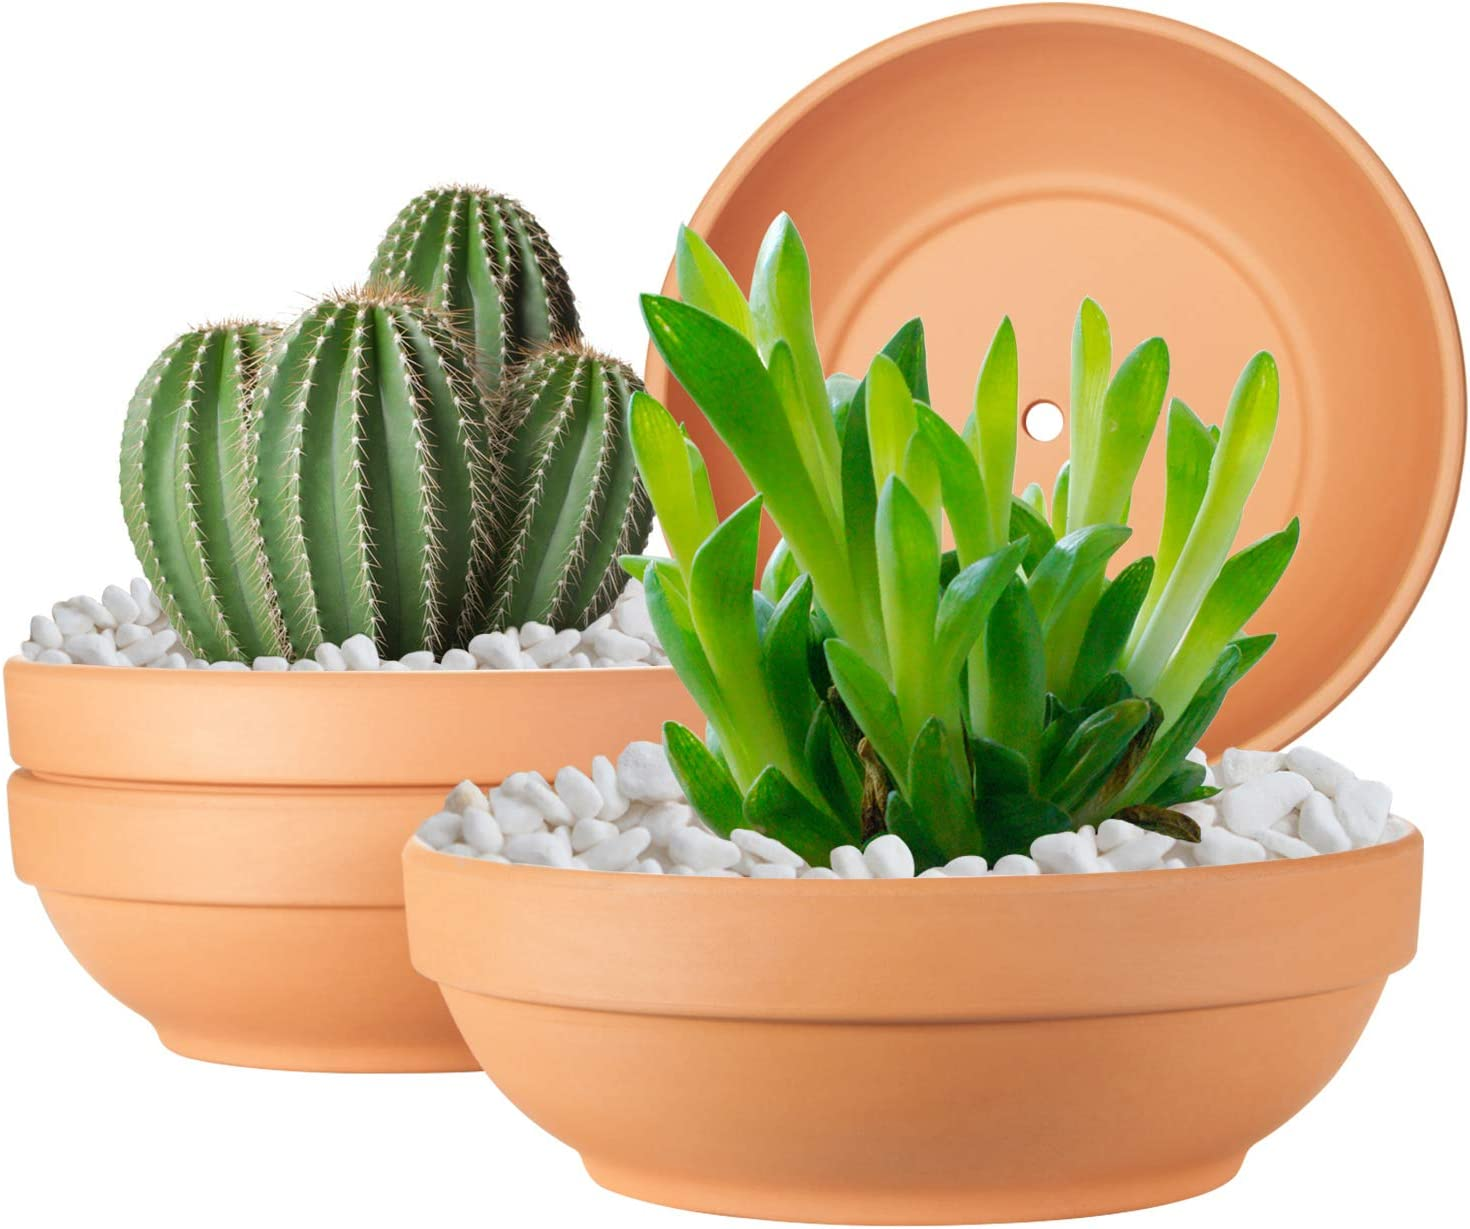 Clay Pots for Plants with Drainage Hole, 4 Pack Large Terra Cotta Plant Pot, 7.67 Inch Terra Cotta Pot Ceramic Pottery Planter Cactus Flower Pots Succulent Pot